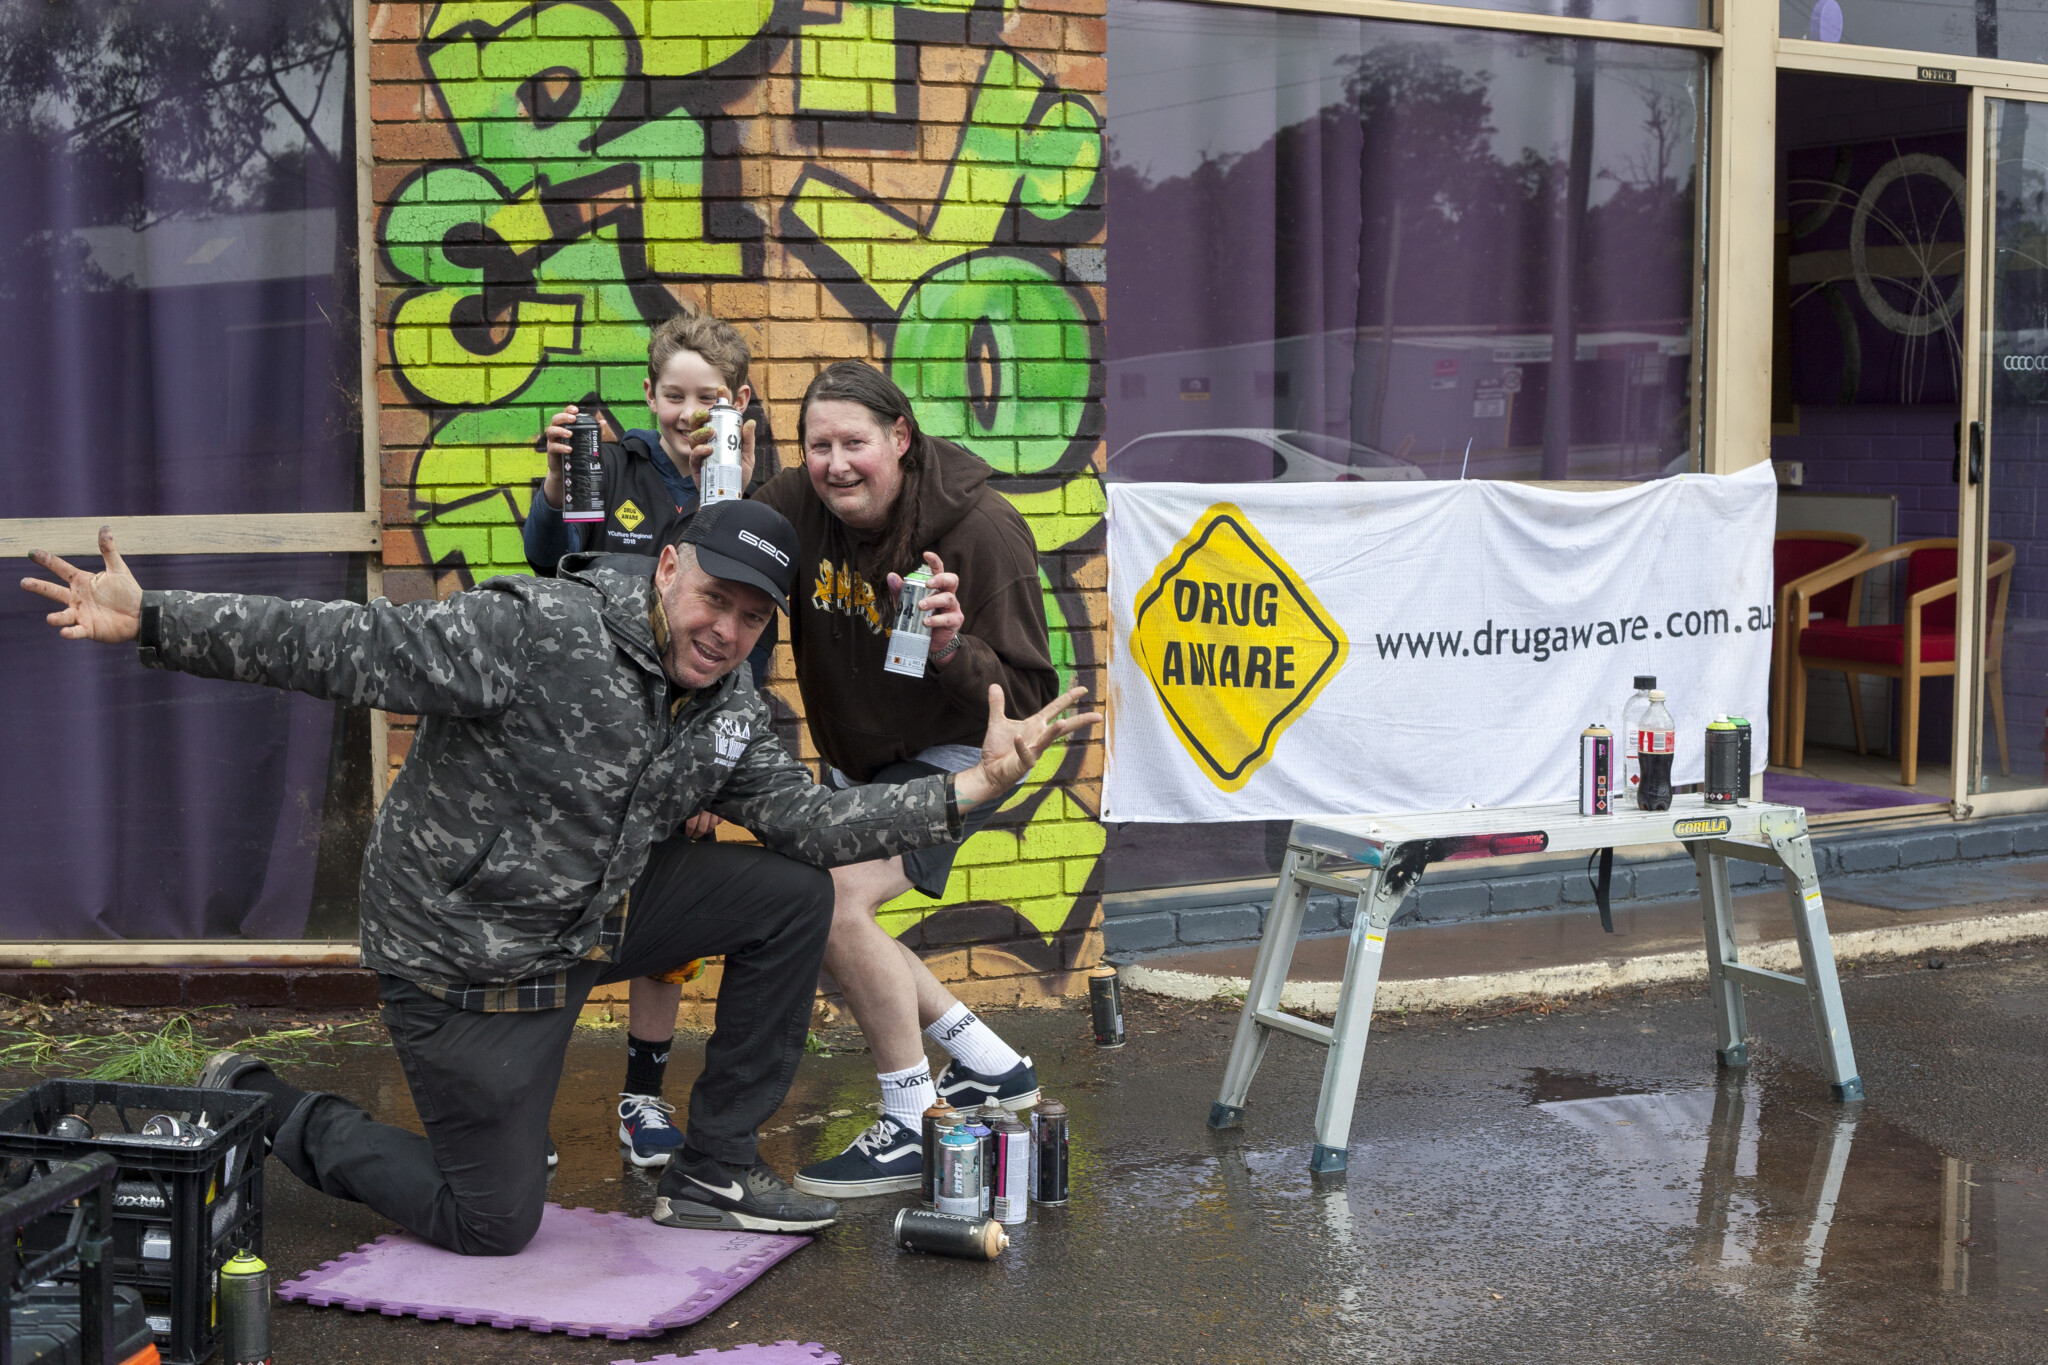 A young boy and an older man hold spray cans while a man poses on his knees with arms outstretched in front of graffiti mural.